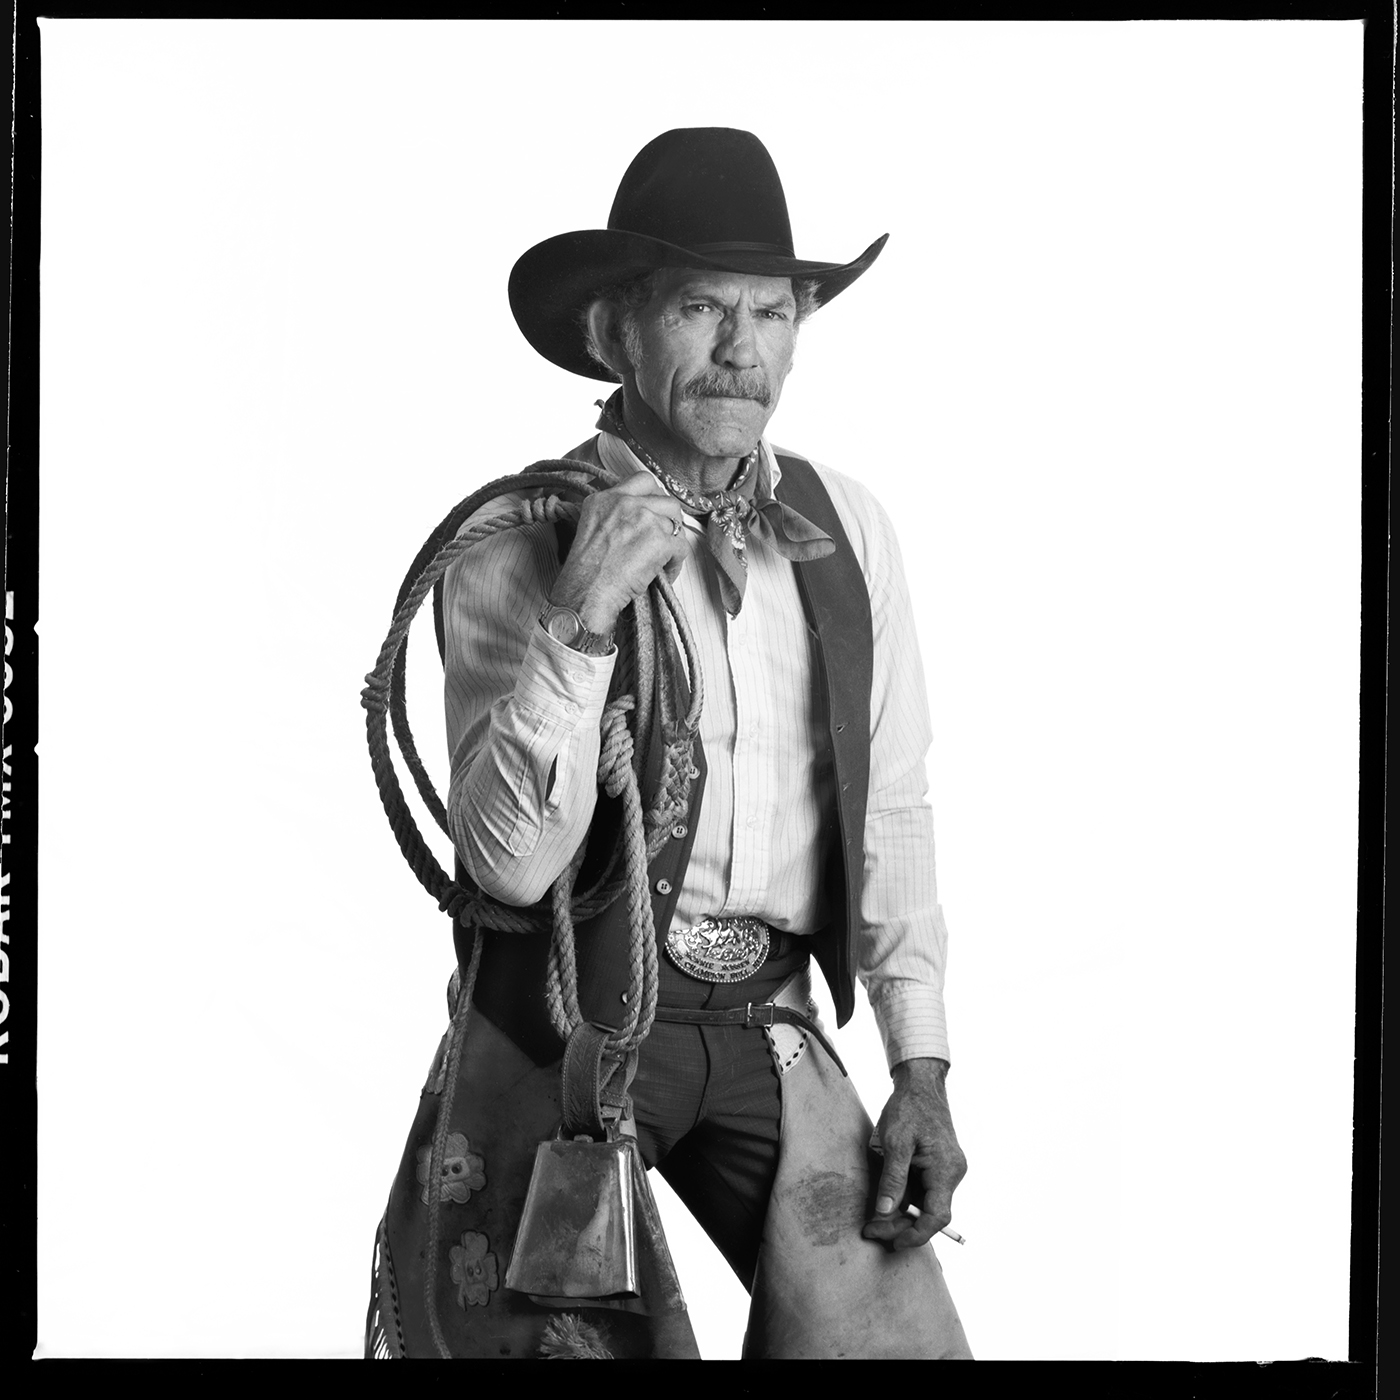 Ronnie Rossen, 2-time World Champion Bull Rider,Reno, Nevada, 1990